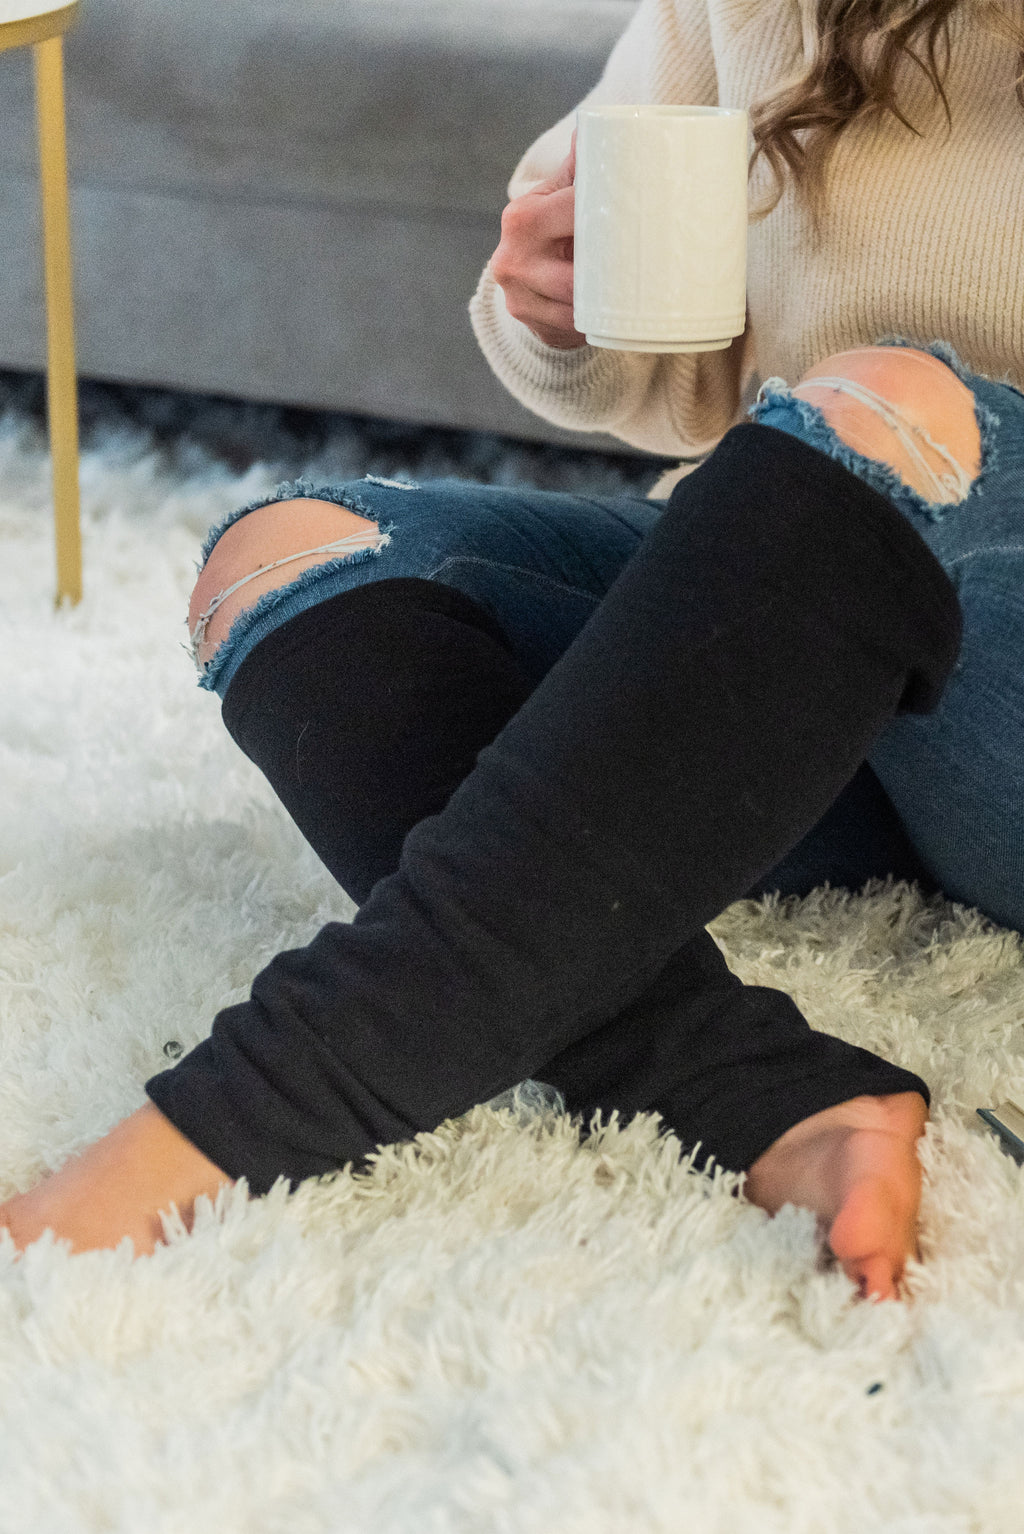 woman sits on a white plush fuzzy carpet while holding a white mug of tea. She is wearing a beige knit sweater, jeans, and black leg warmers that cover her legs below the knee.